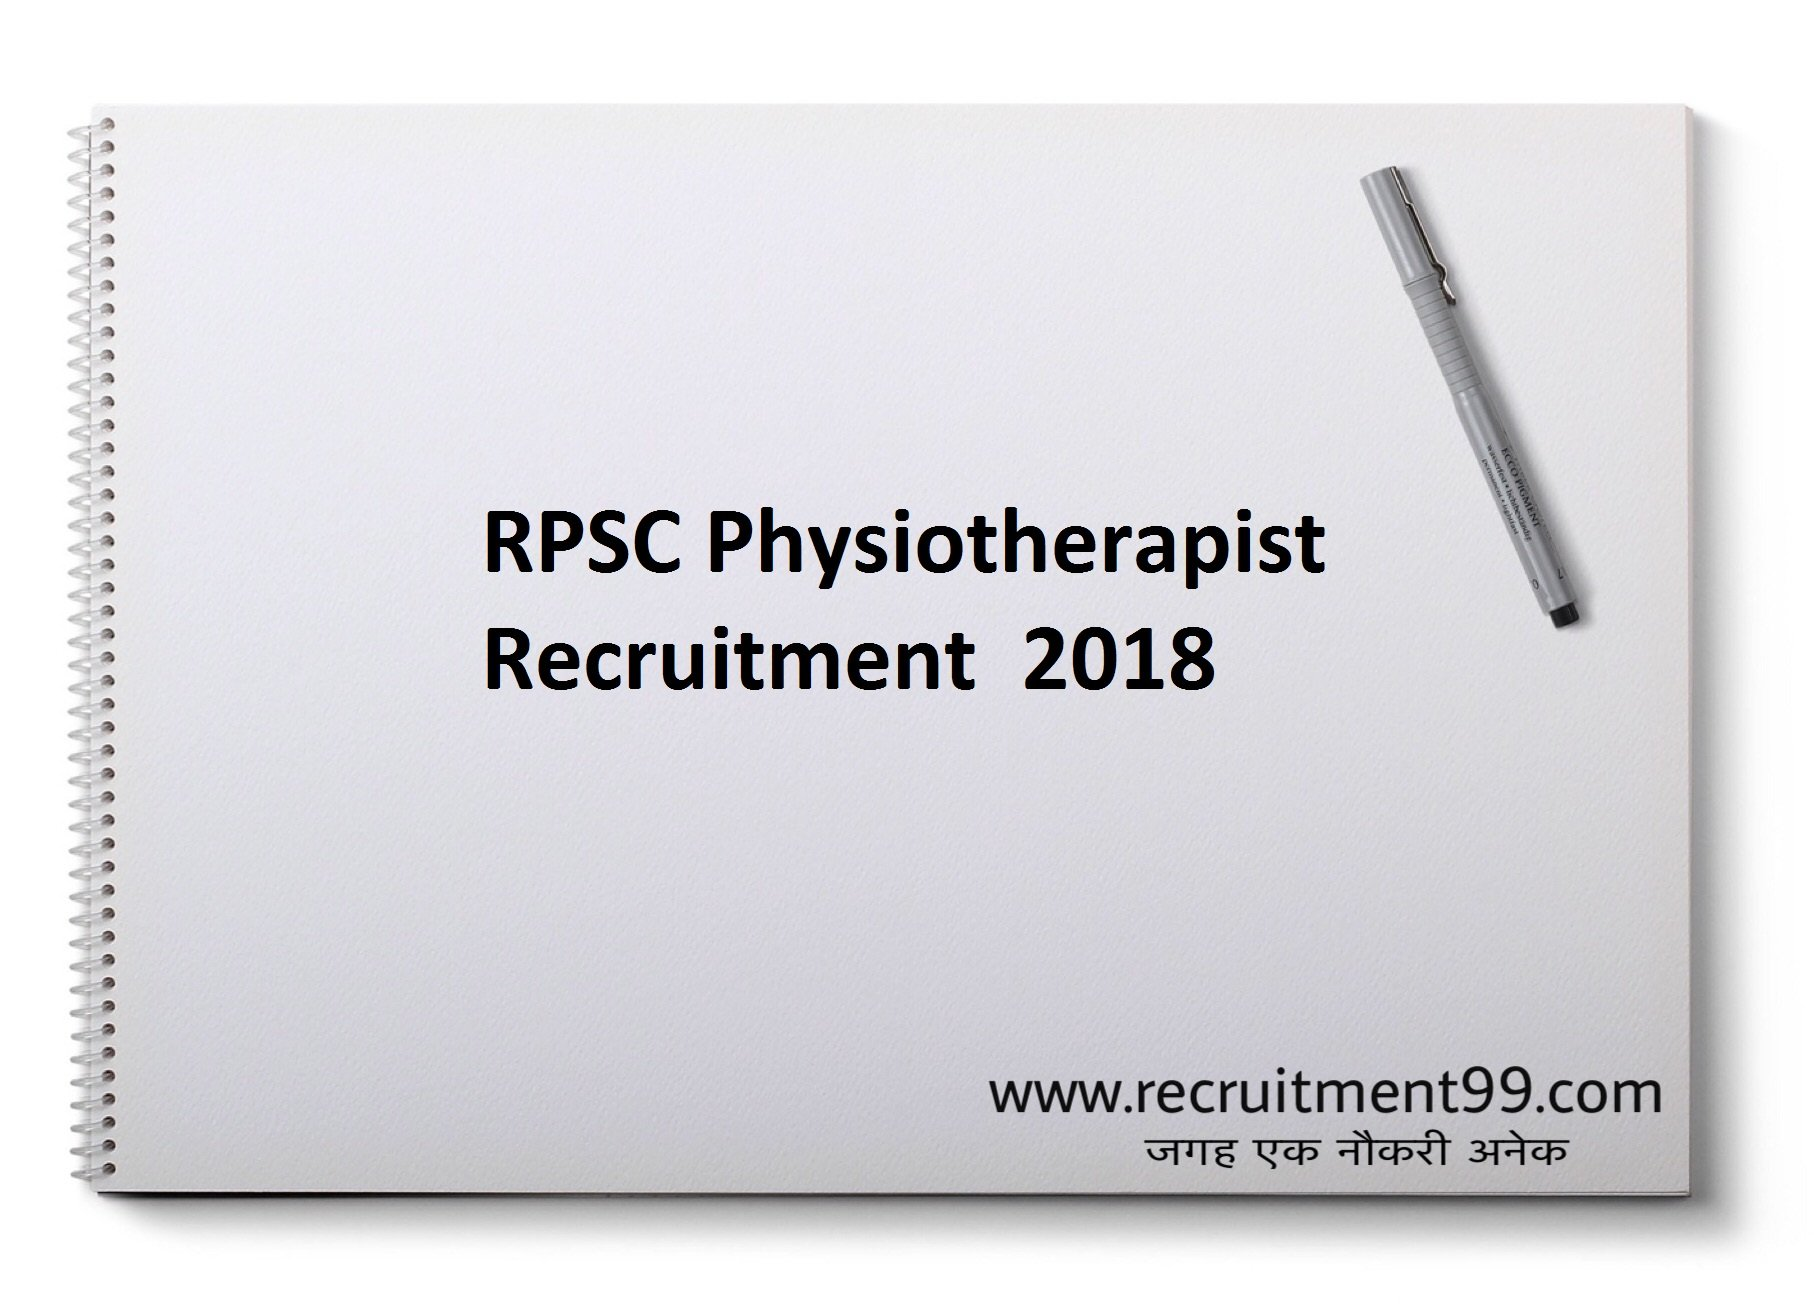 RPSC Physiotherapist Recruitment Admit Card Result 2018